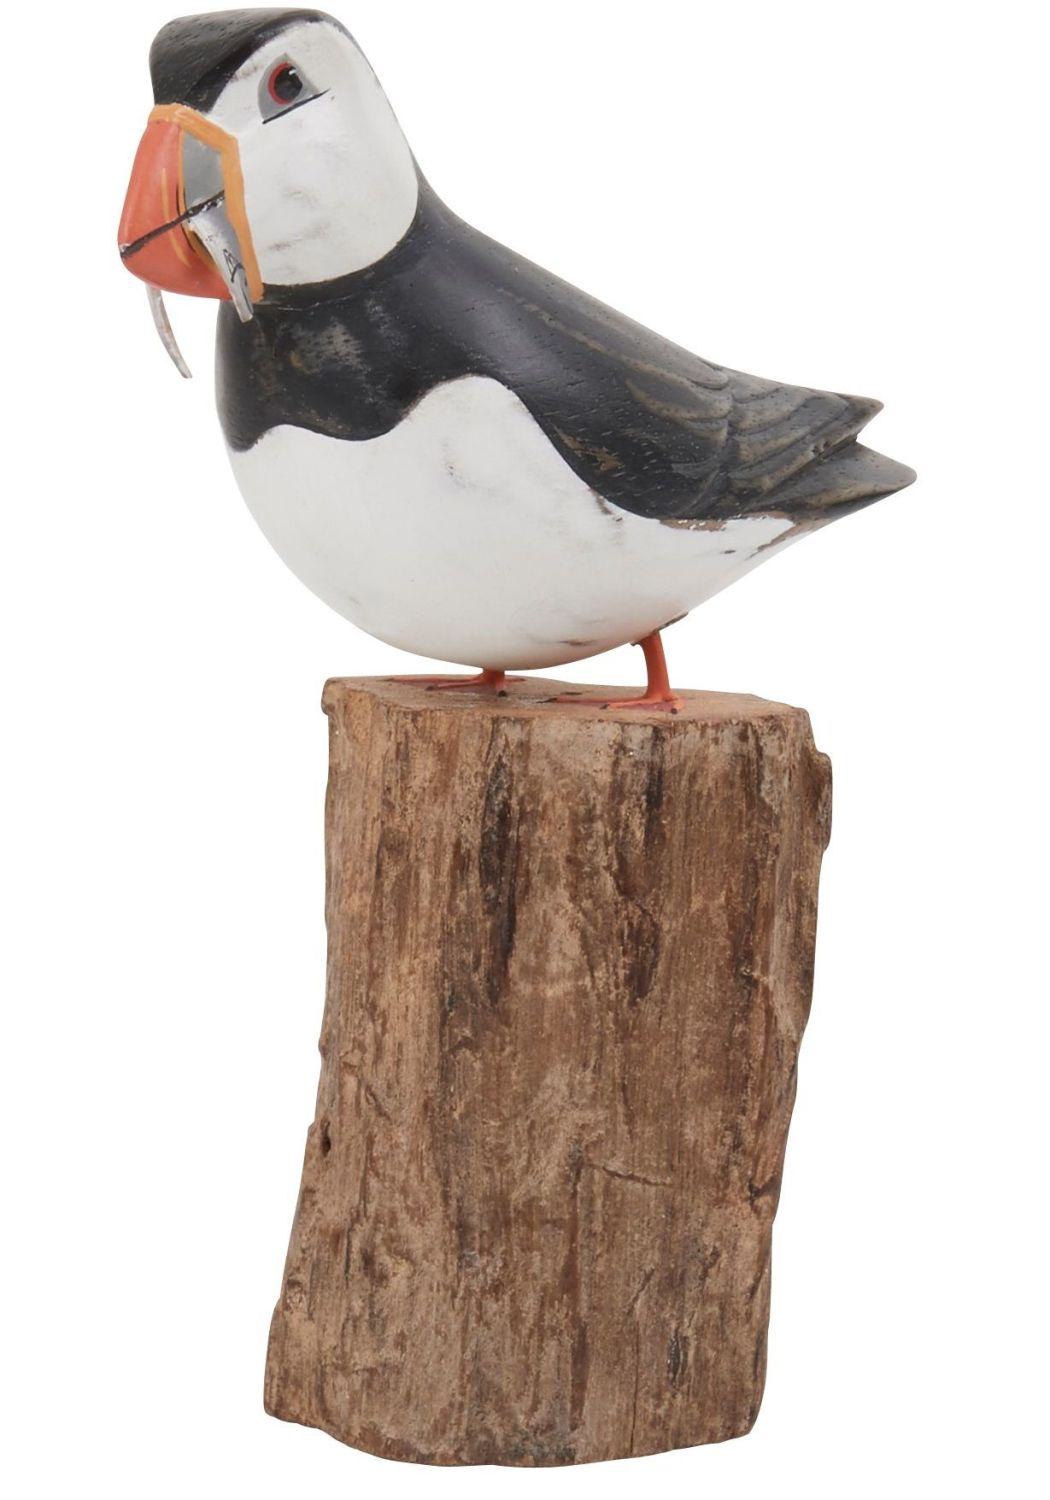 Archipelago Puffin with Fish Small Bird Wood Carving